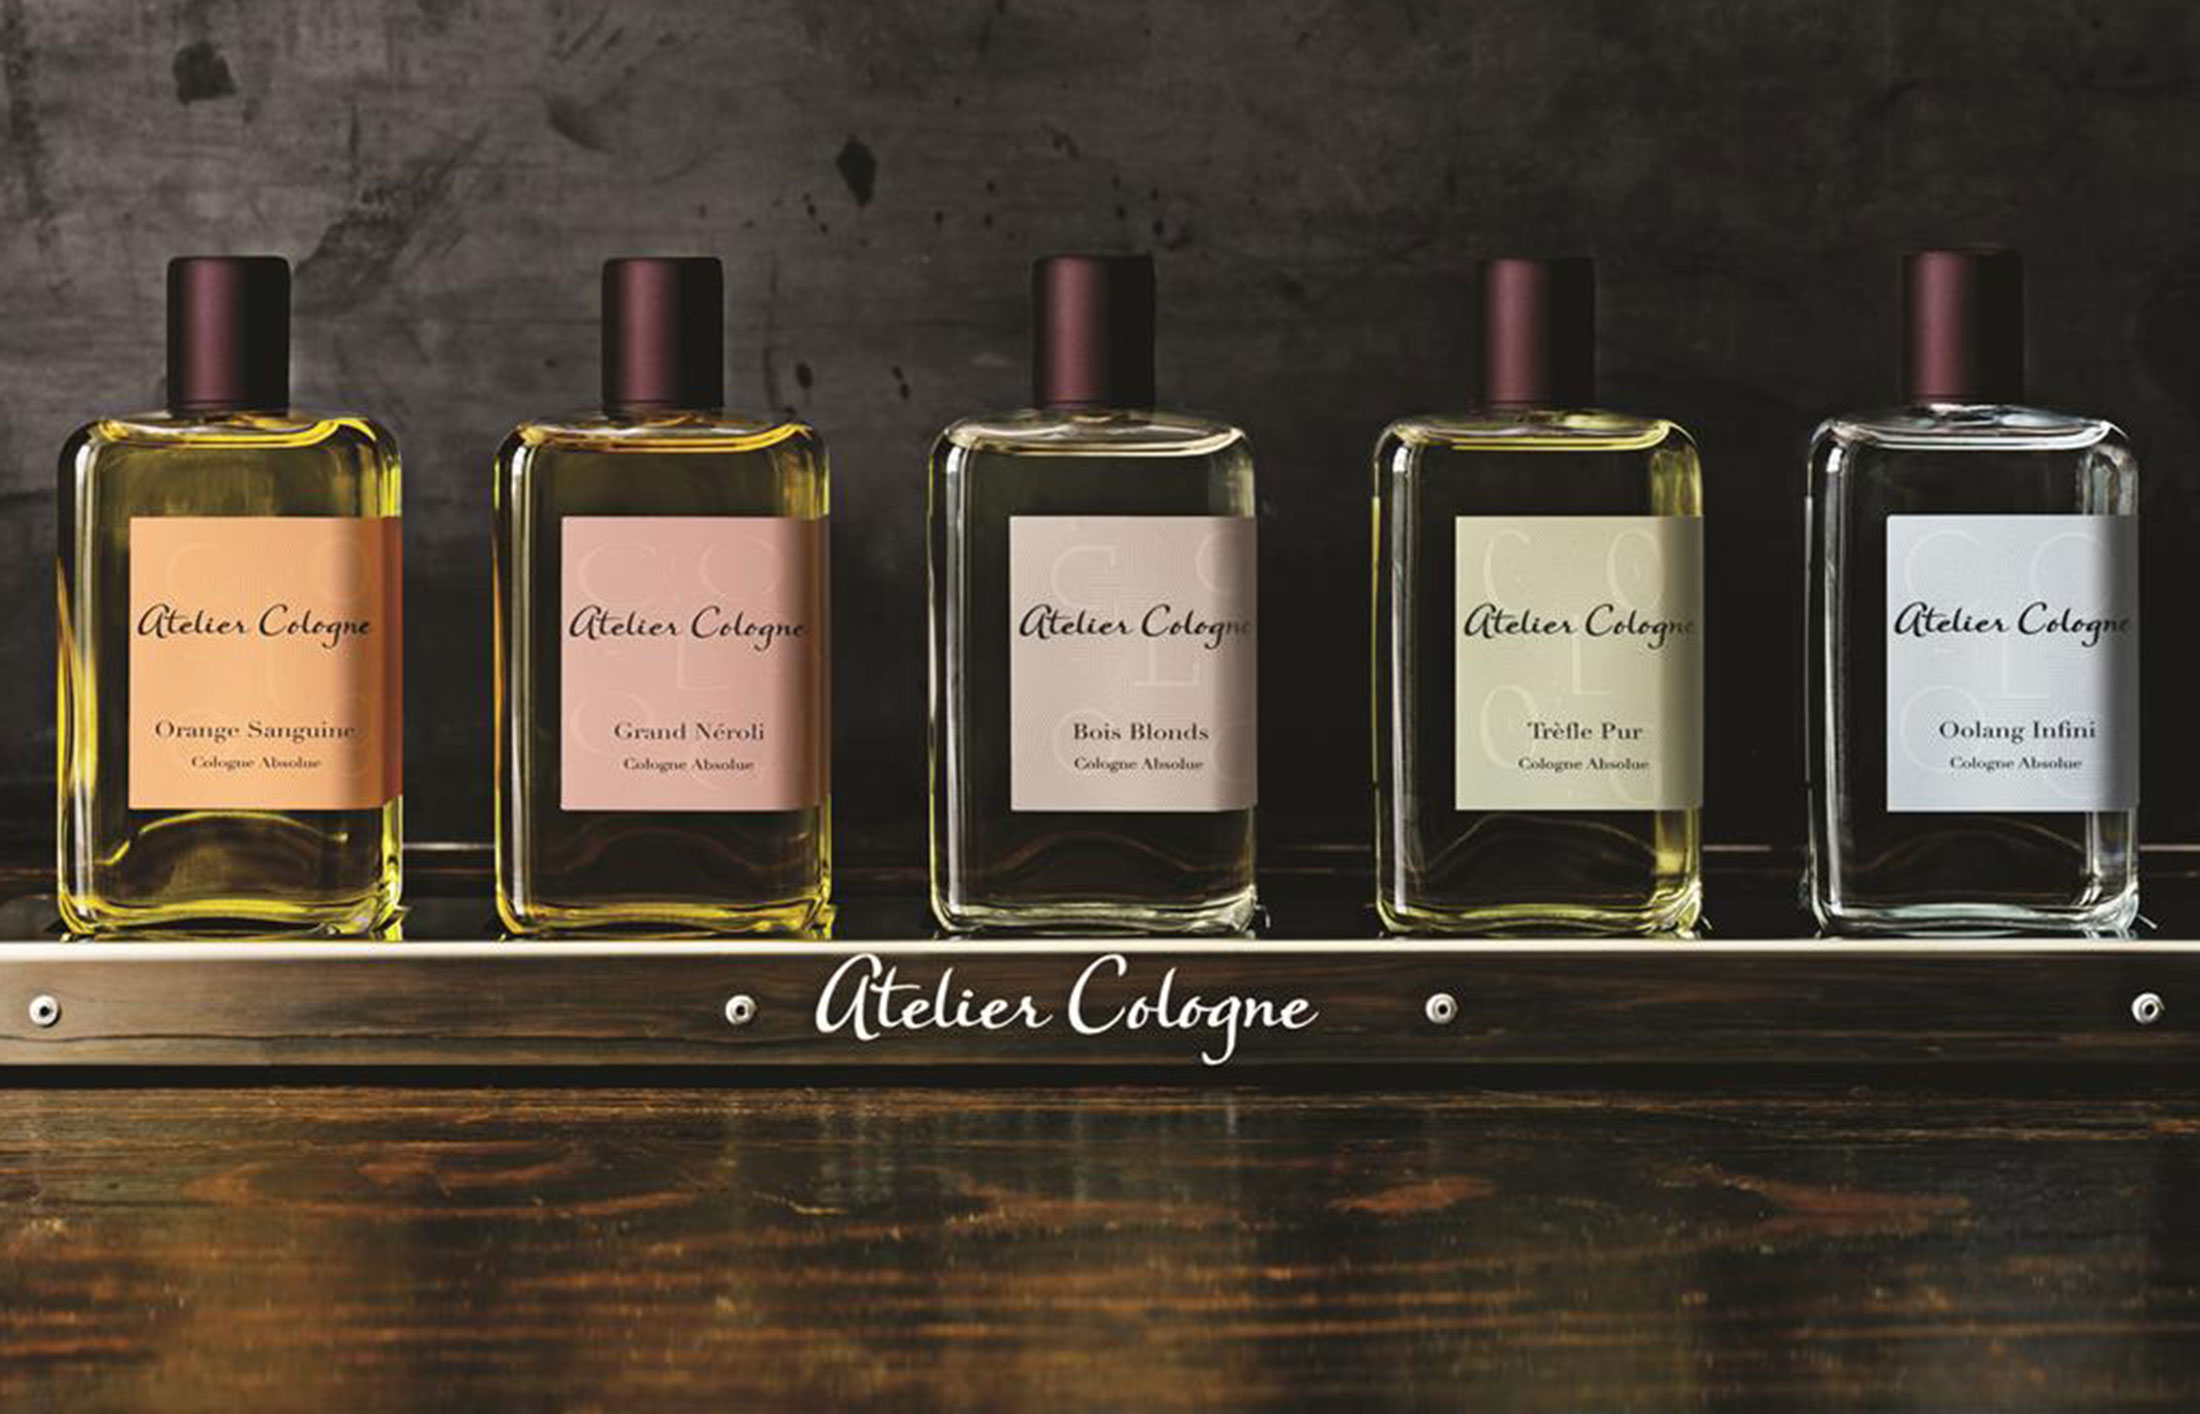 Atelier cologne a maison de parfum with nyc roots bloomberg for Atelier catherine masson parfum maison